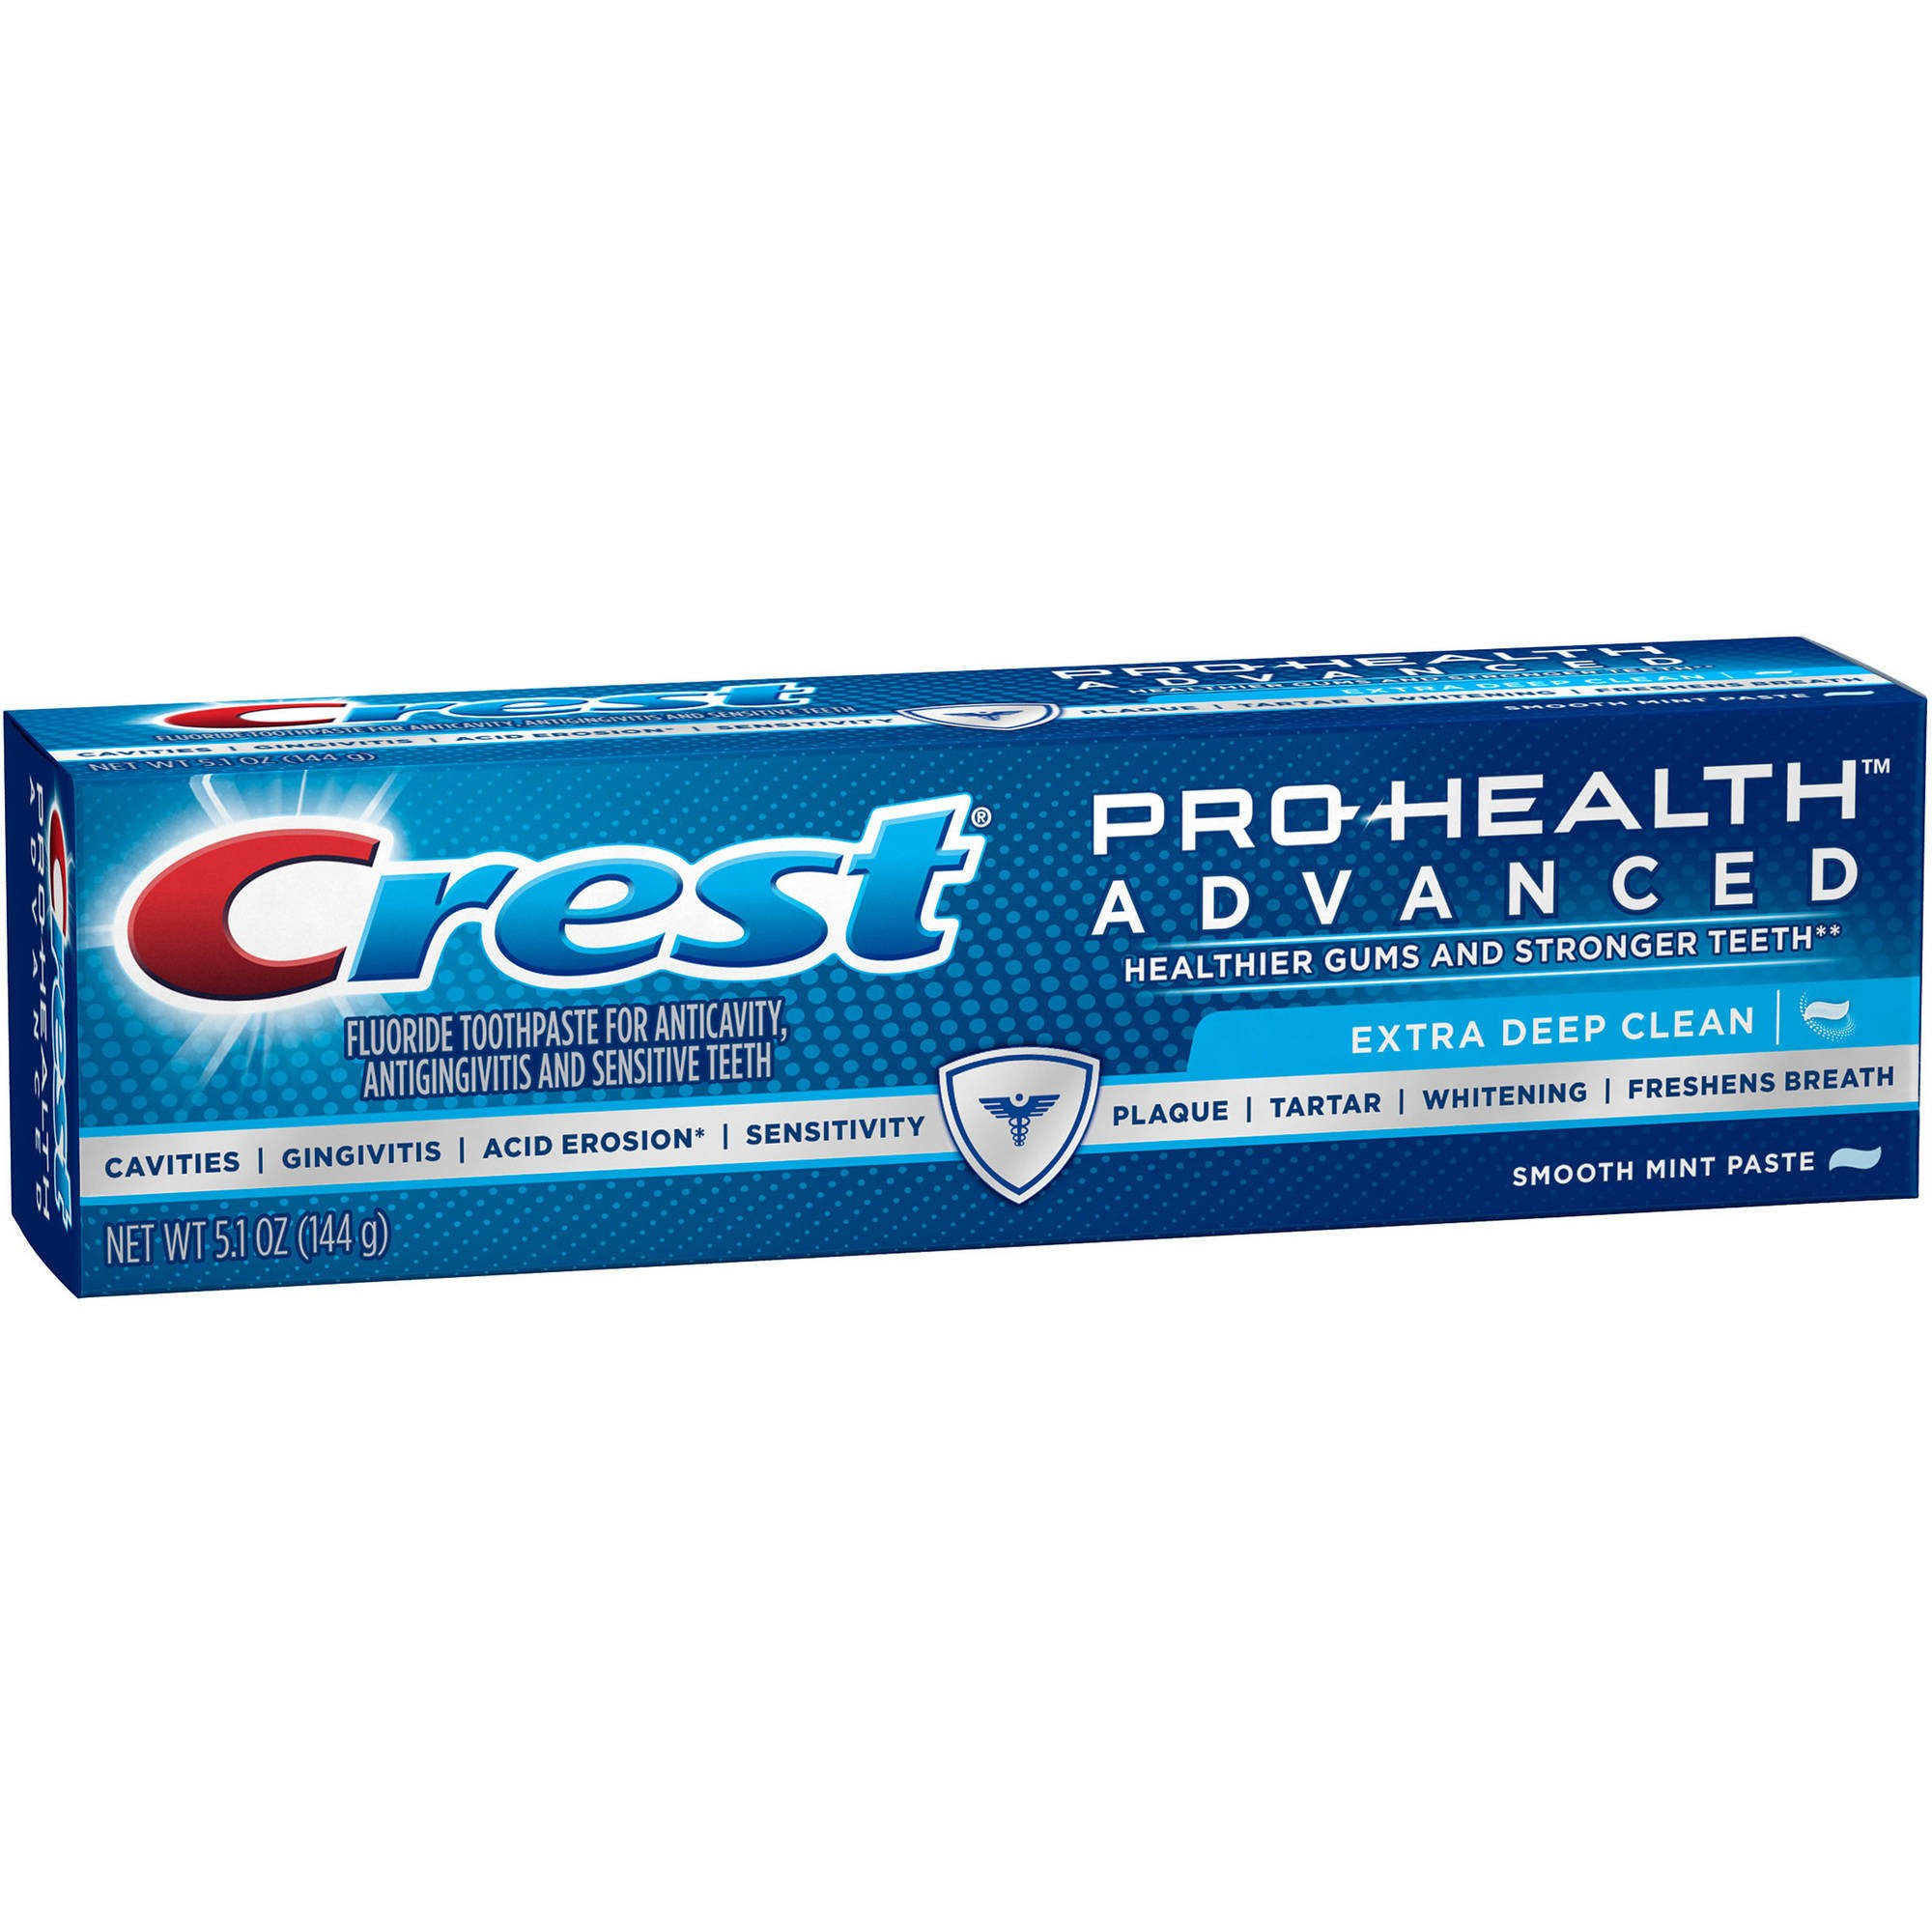 Crest Pro-Health Advanced Extra Deep Clean Toothpaste, 5.1 Oz